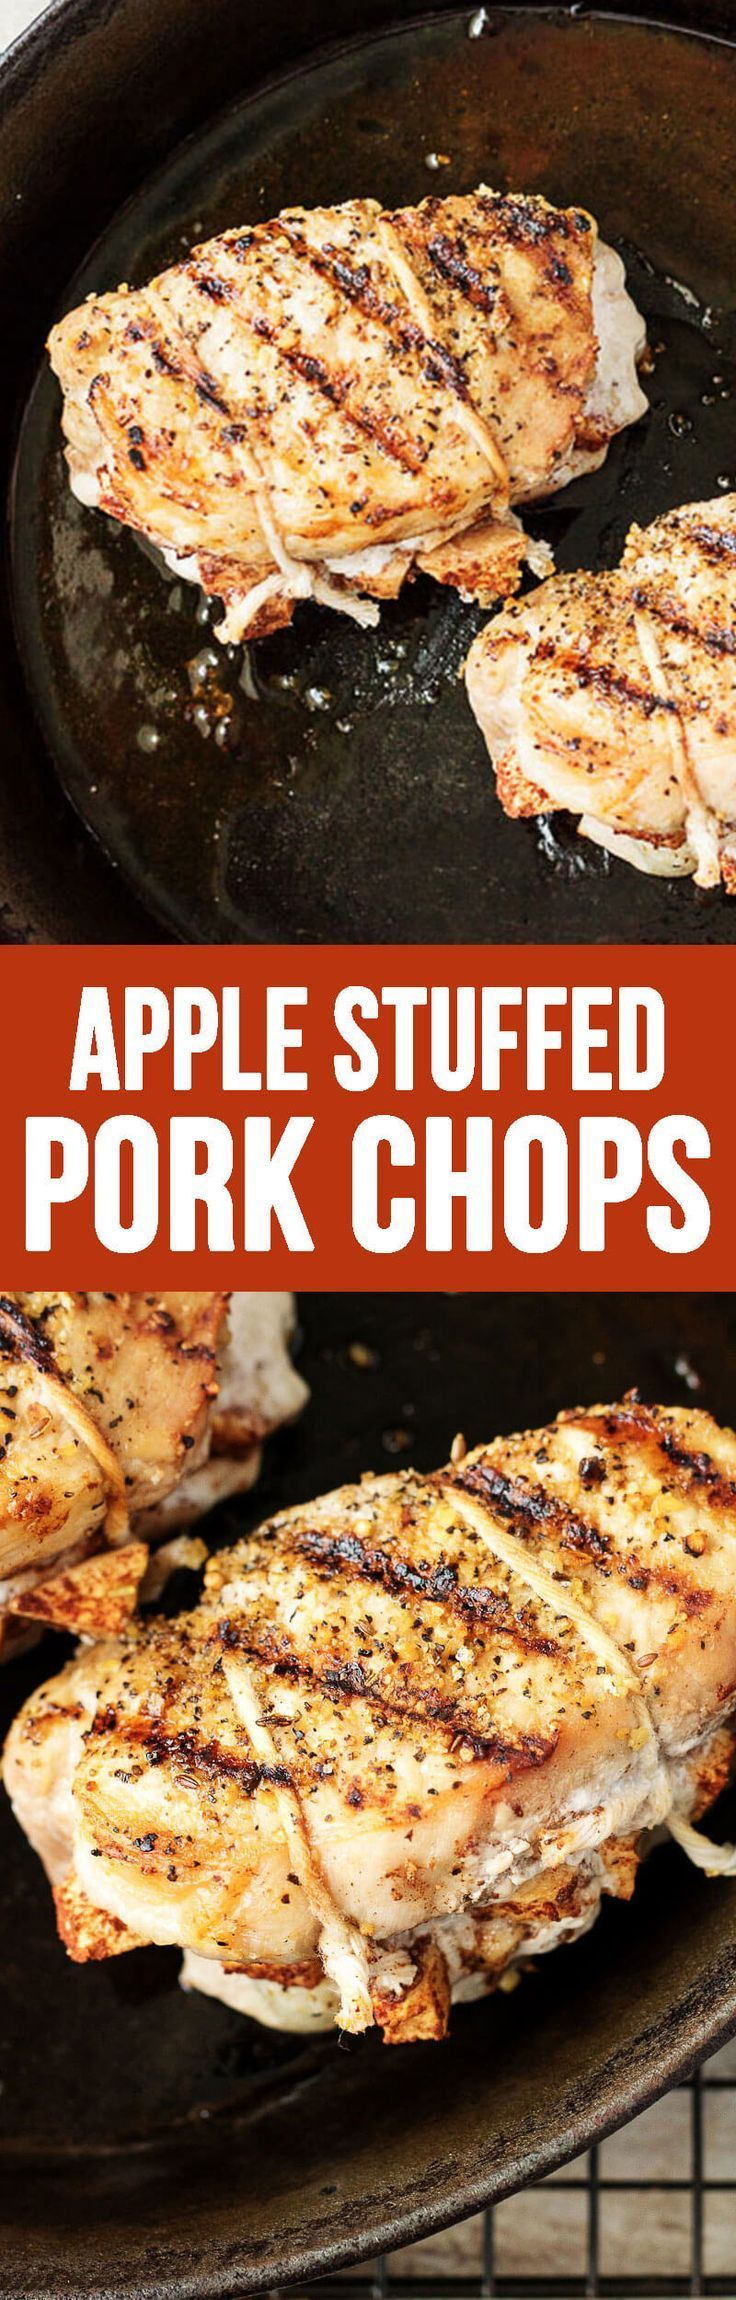 Savory Apple Stuffed Pork Chops will be a new family favorite!